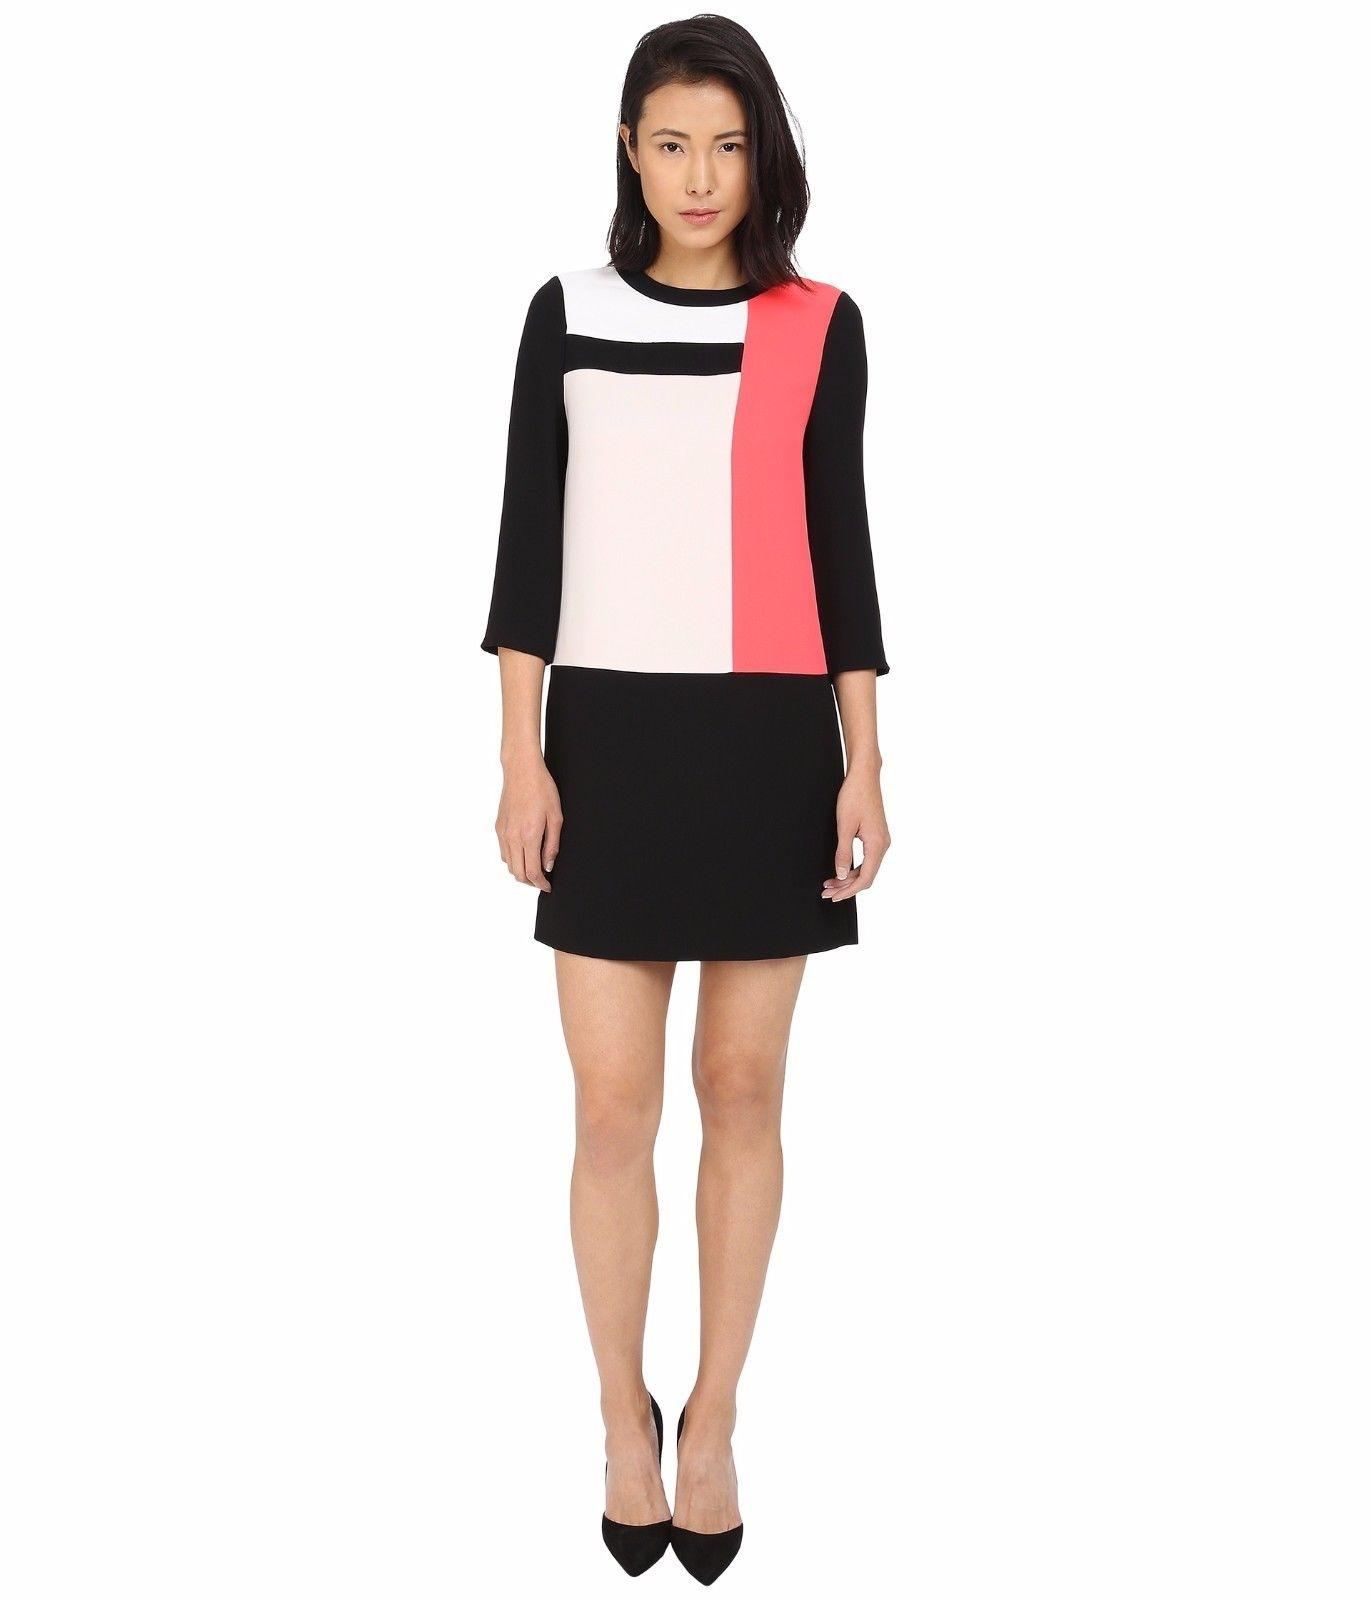 Kate Spade Pink And Black Dress – Fashion Outlet Review